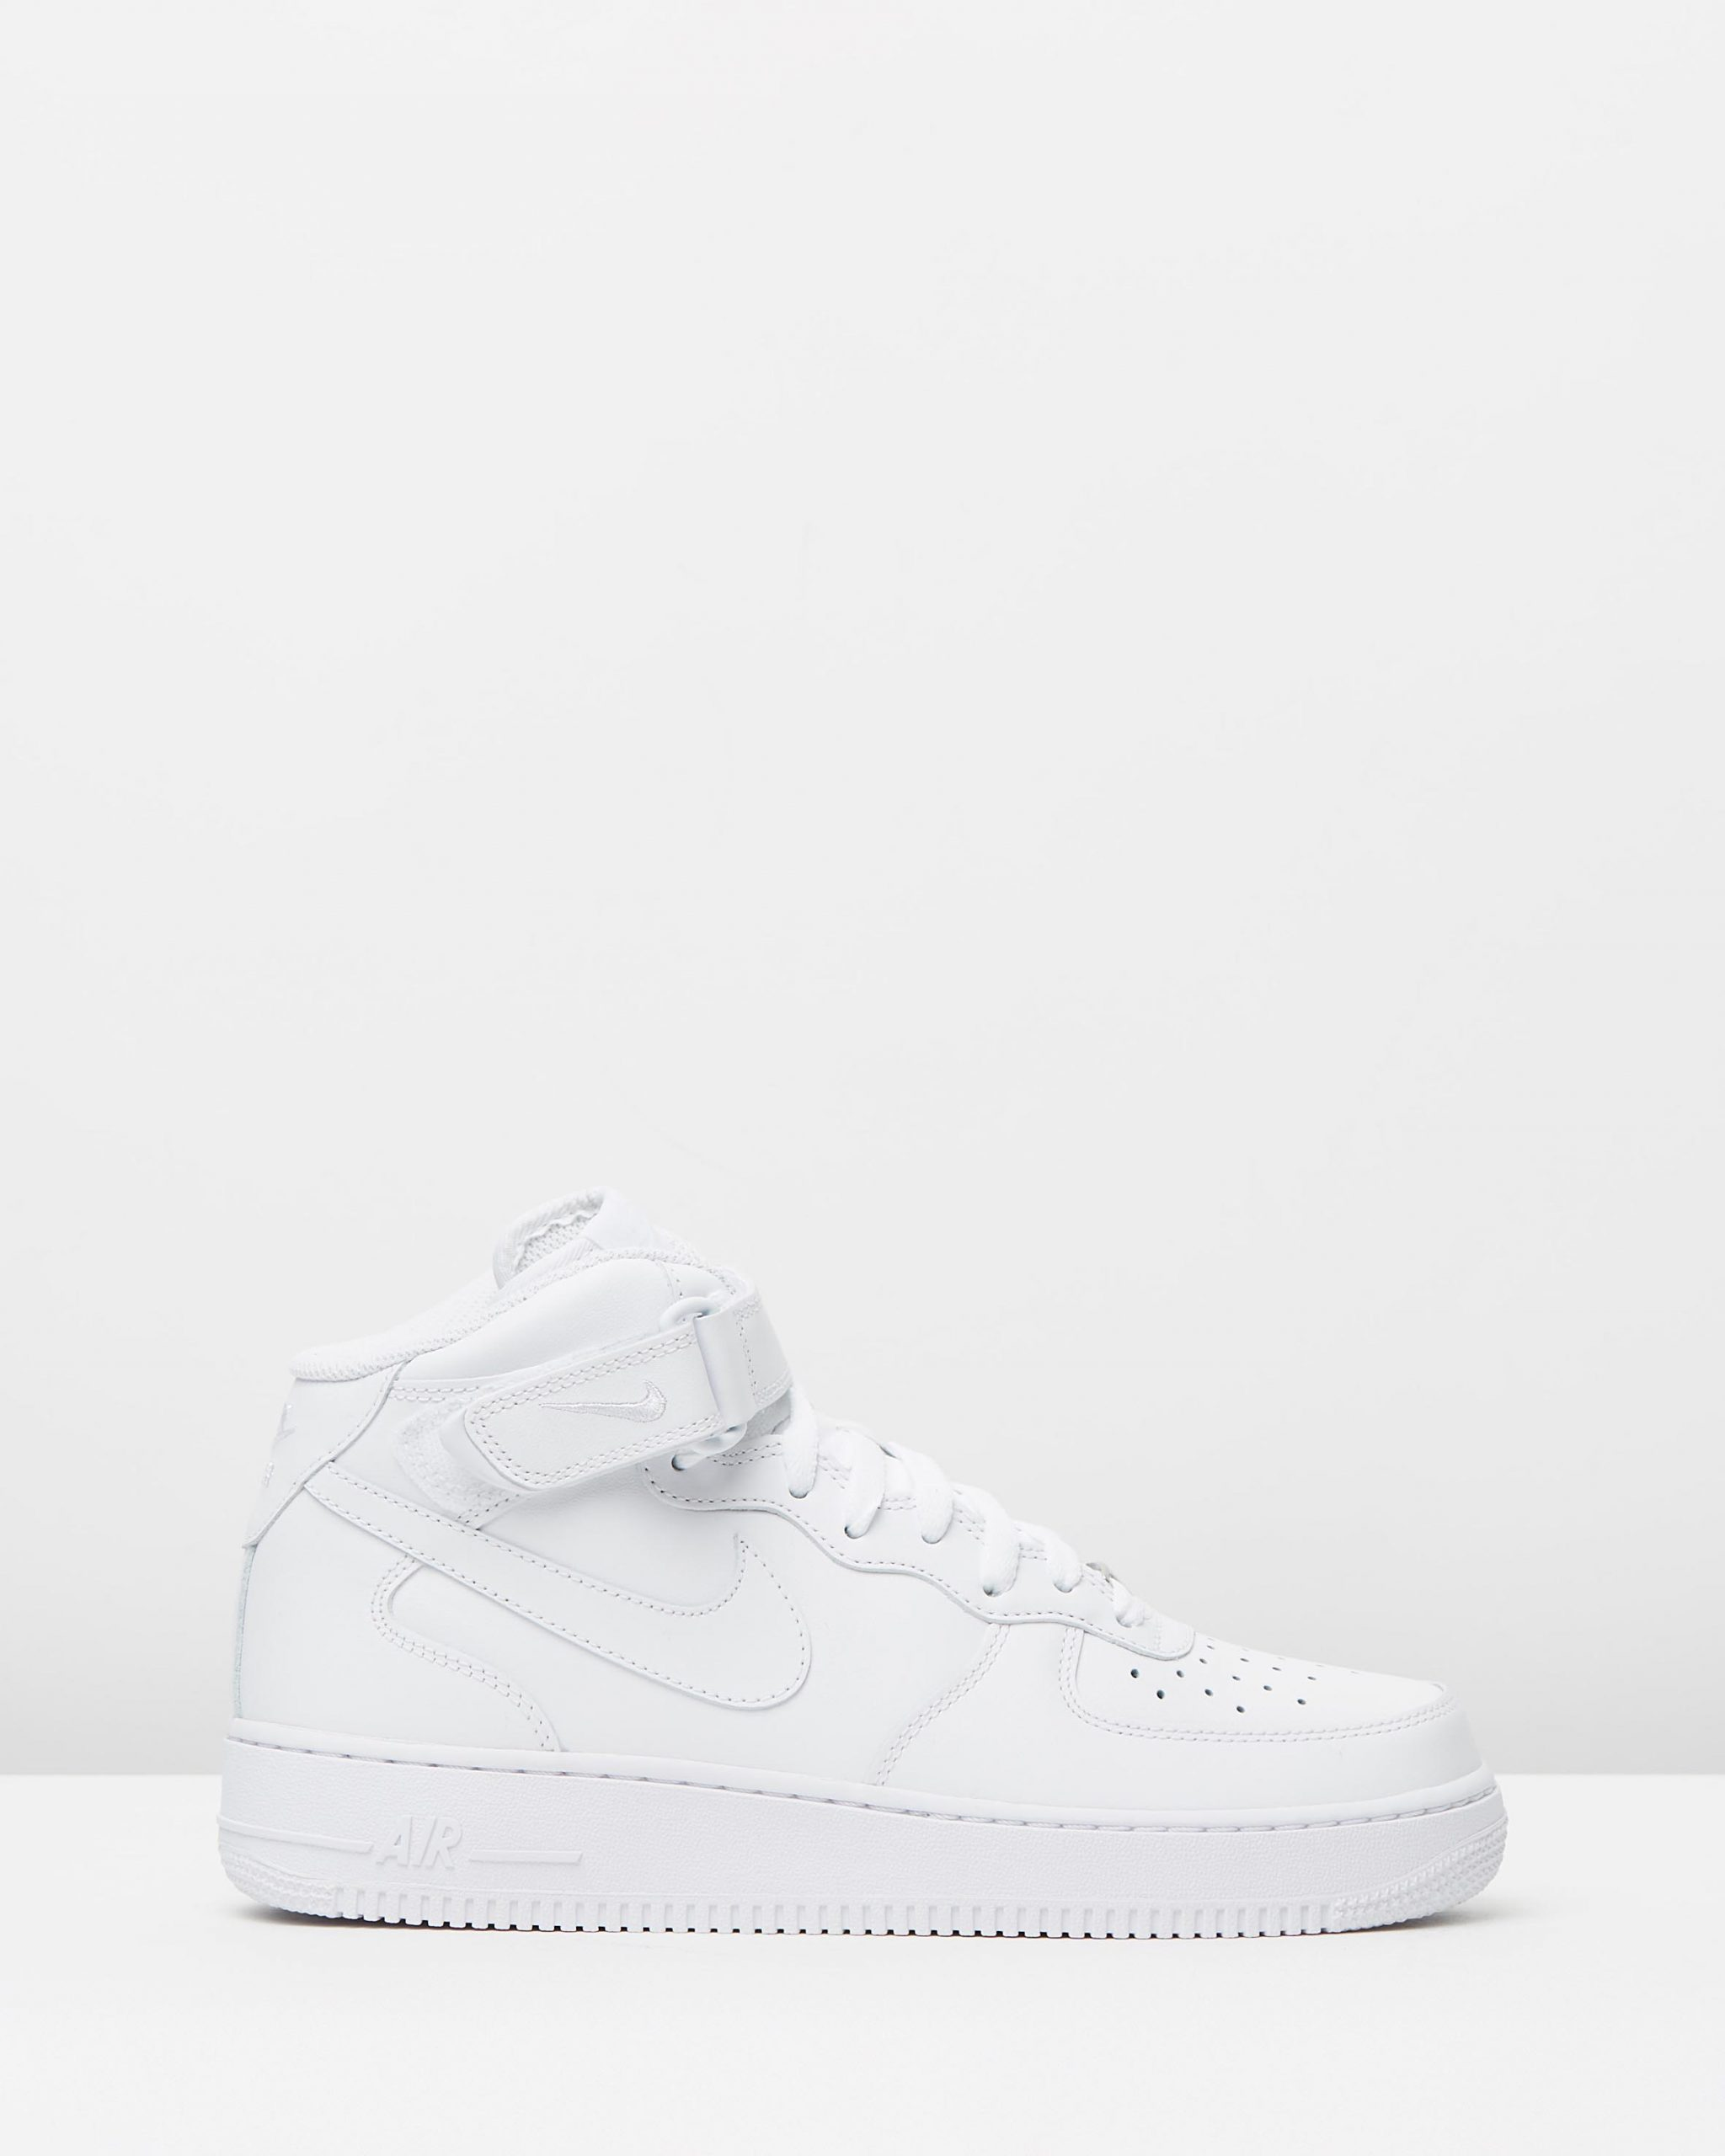 Nike Men's Air Force 1 Mid '07 White